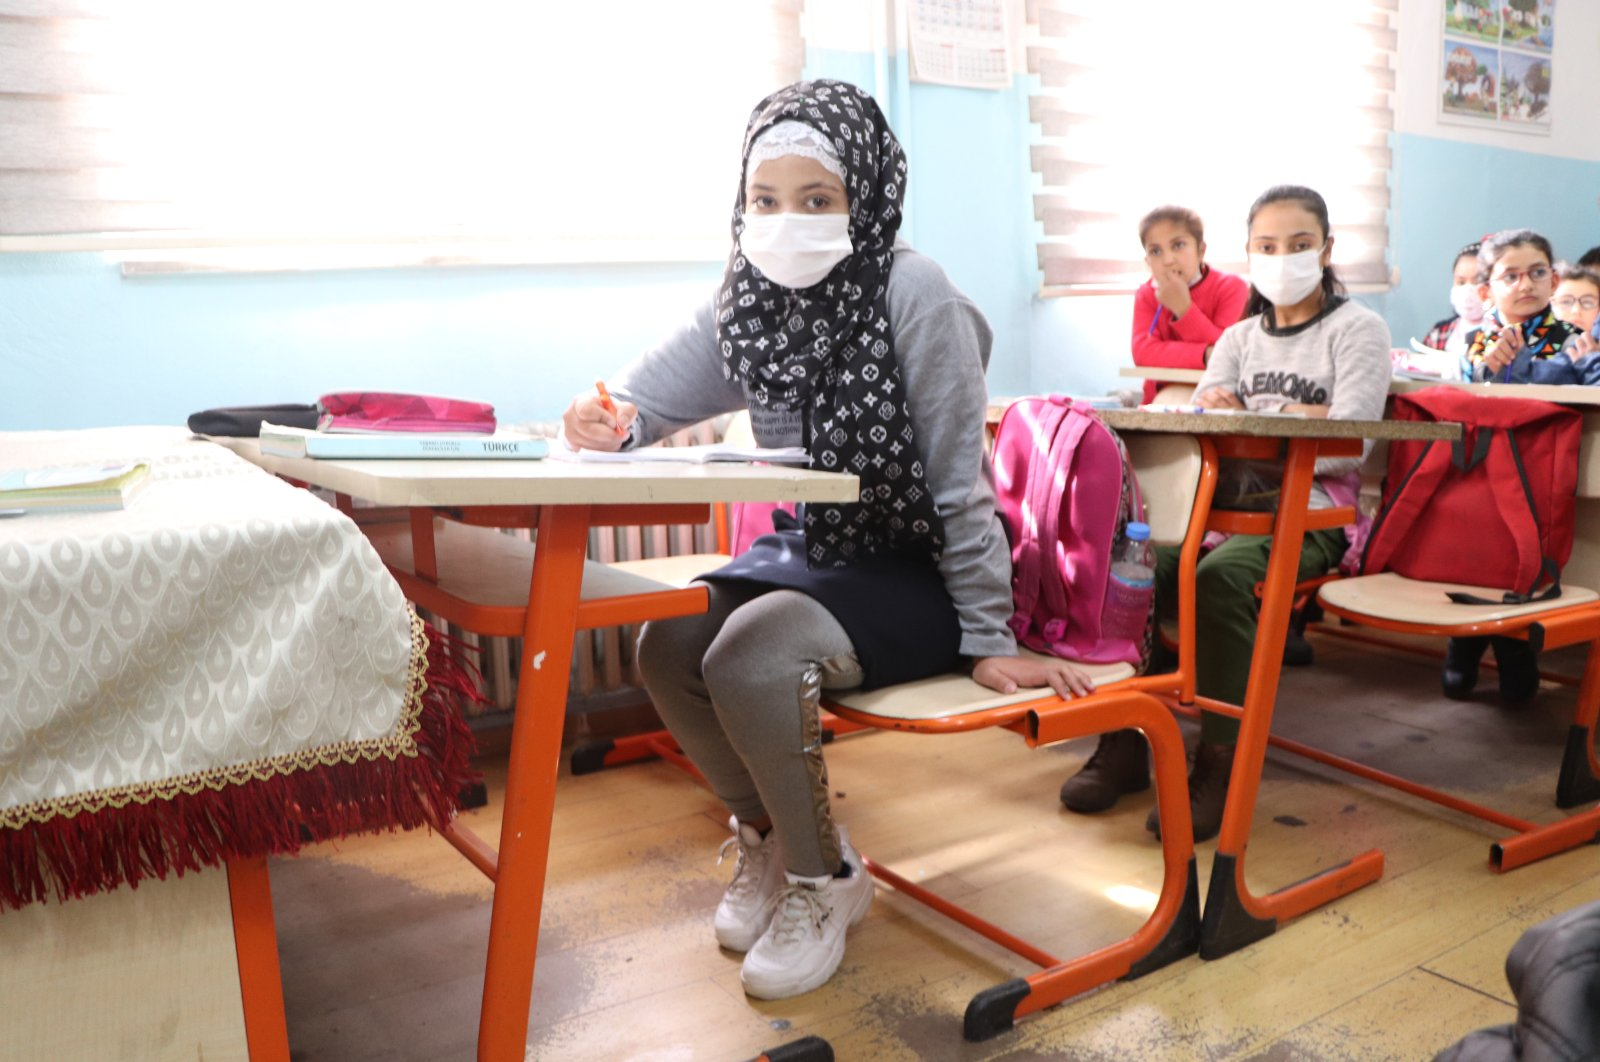 Seyma Elcellud poses in school after having a prosthetic leg operation in Turkey, March 9, 2021. (AA Photo)